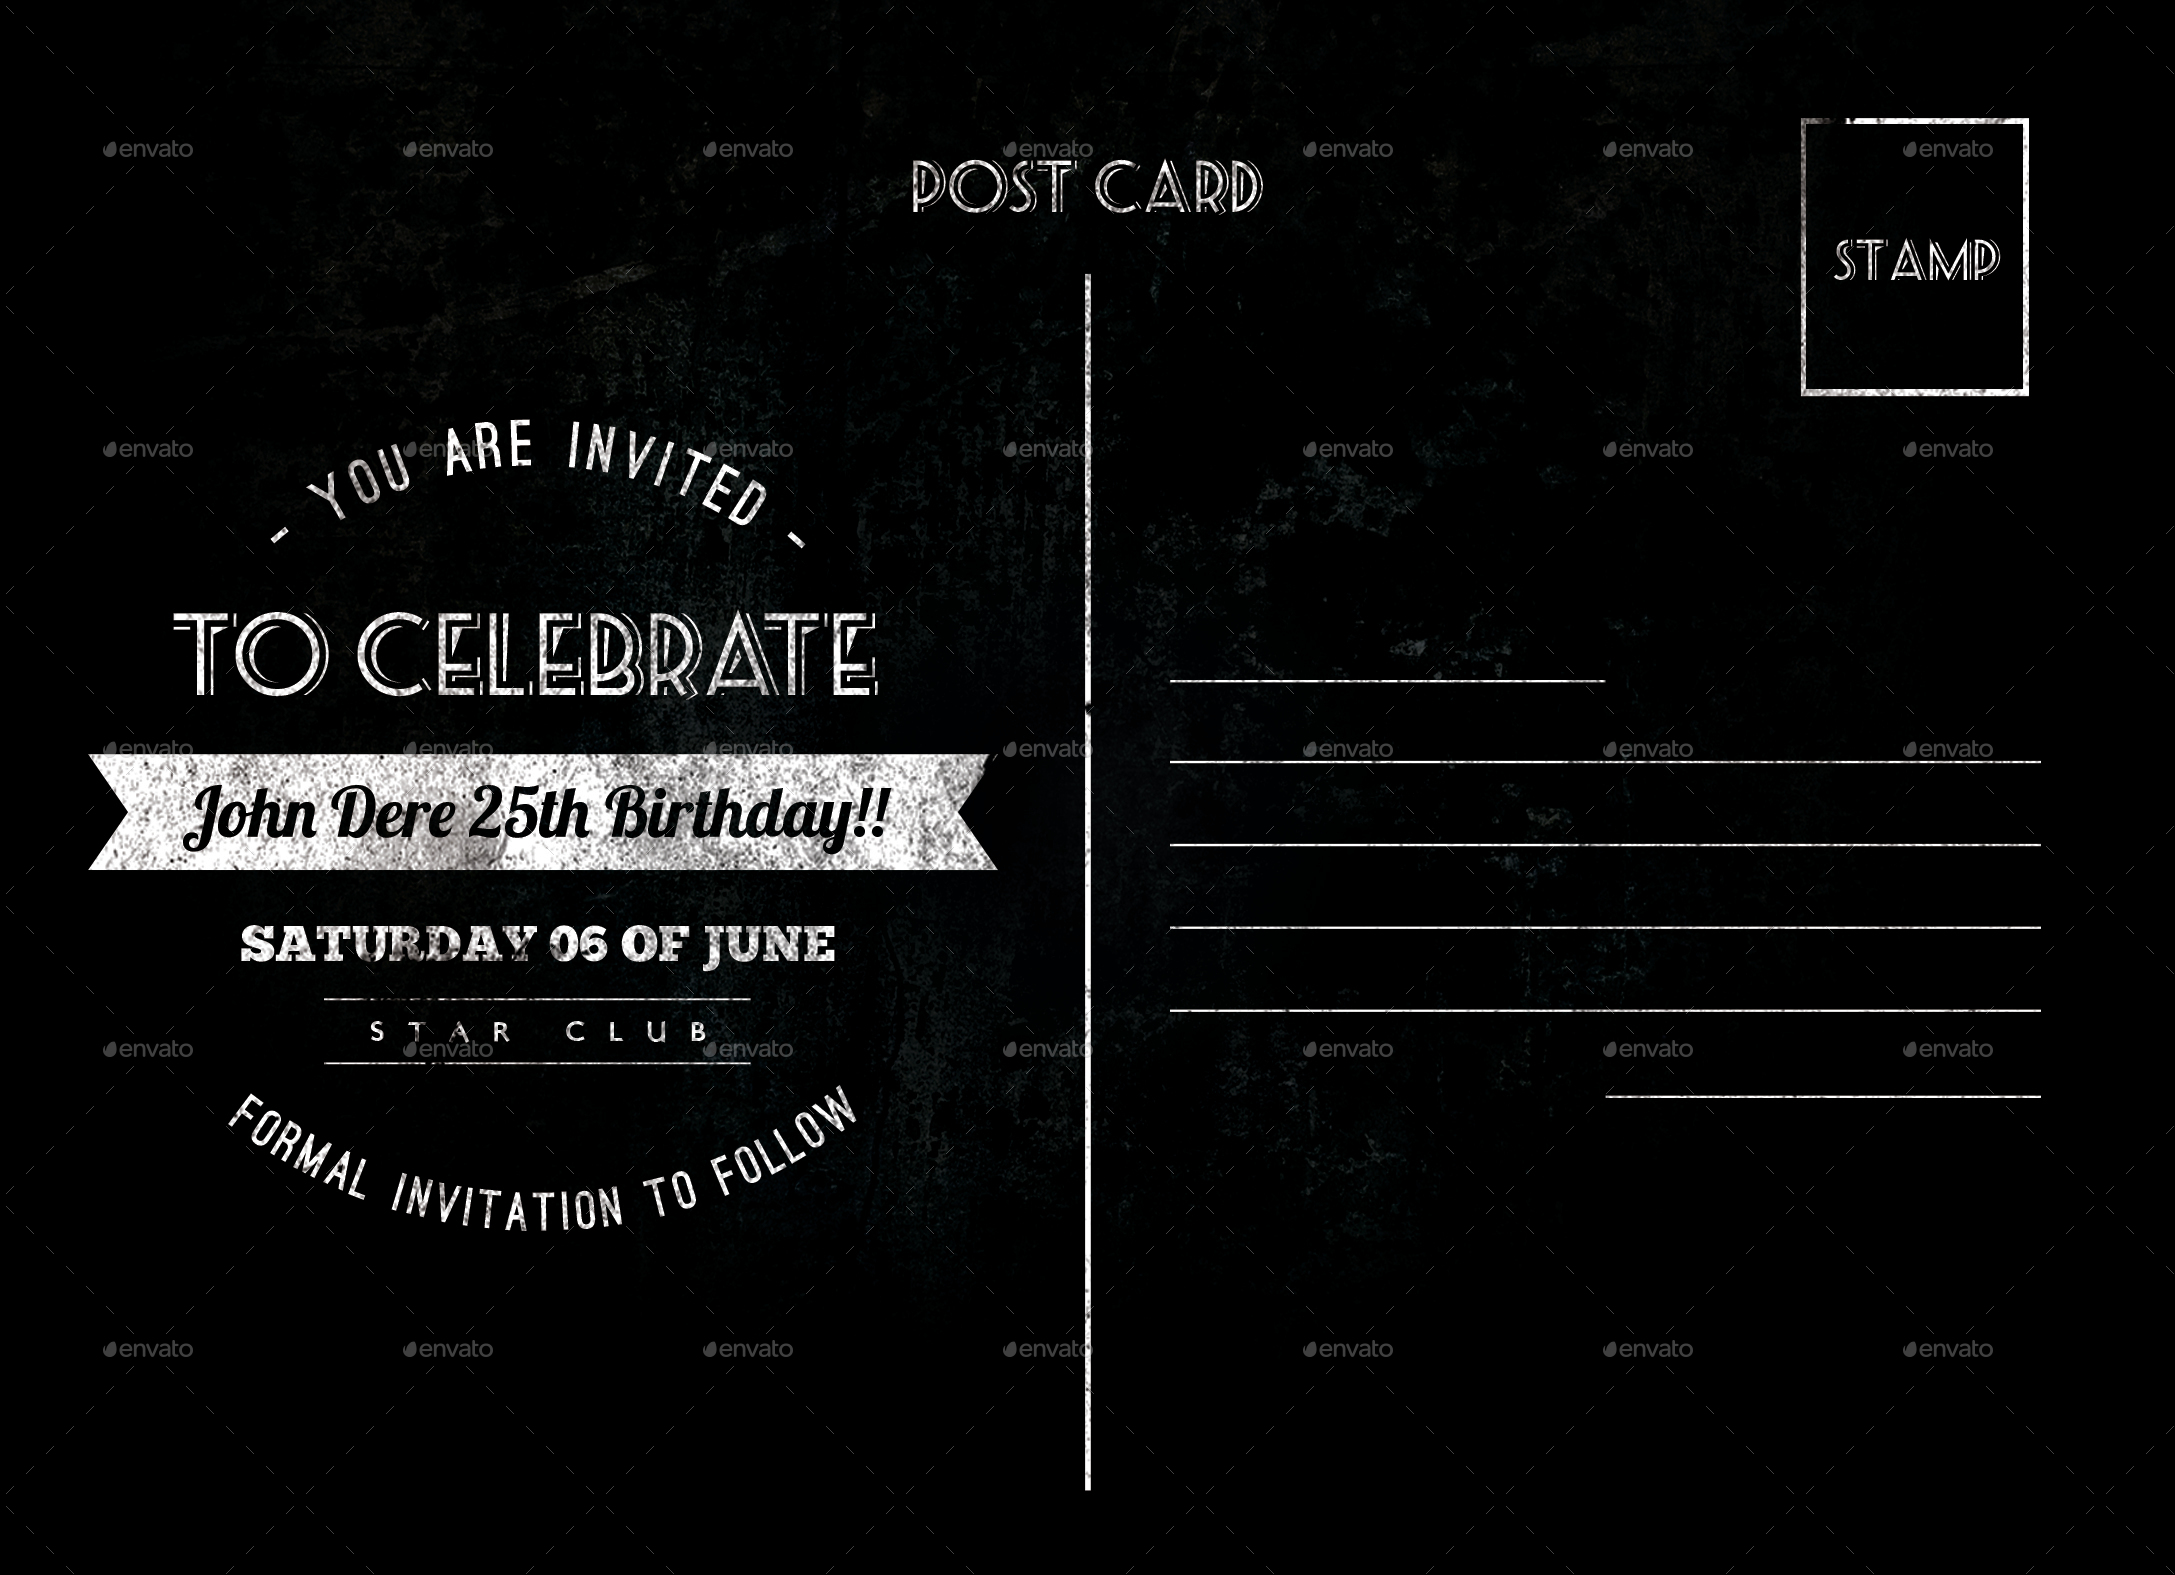 Black birthday card image collections birthday cards ideas black birthday cards image collections birthday cards ideas vintage birthday postcard by nishamehta graphicriver previewbirthday card bookmarktalkfo Images